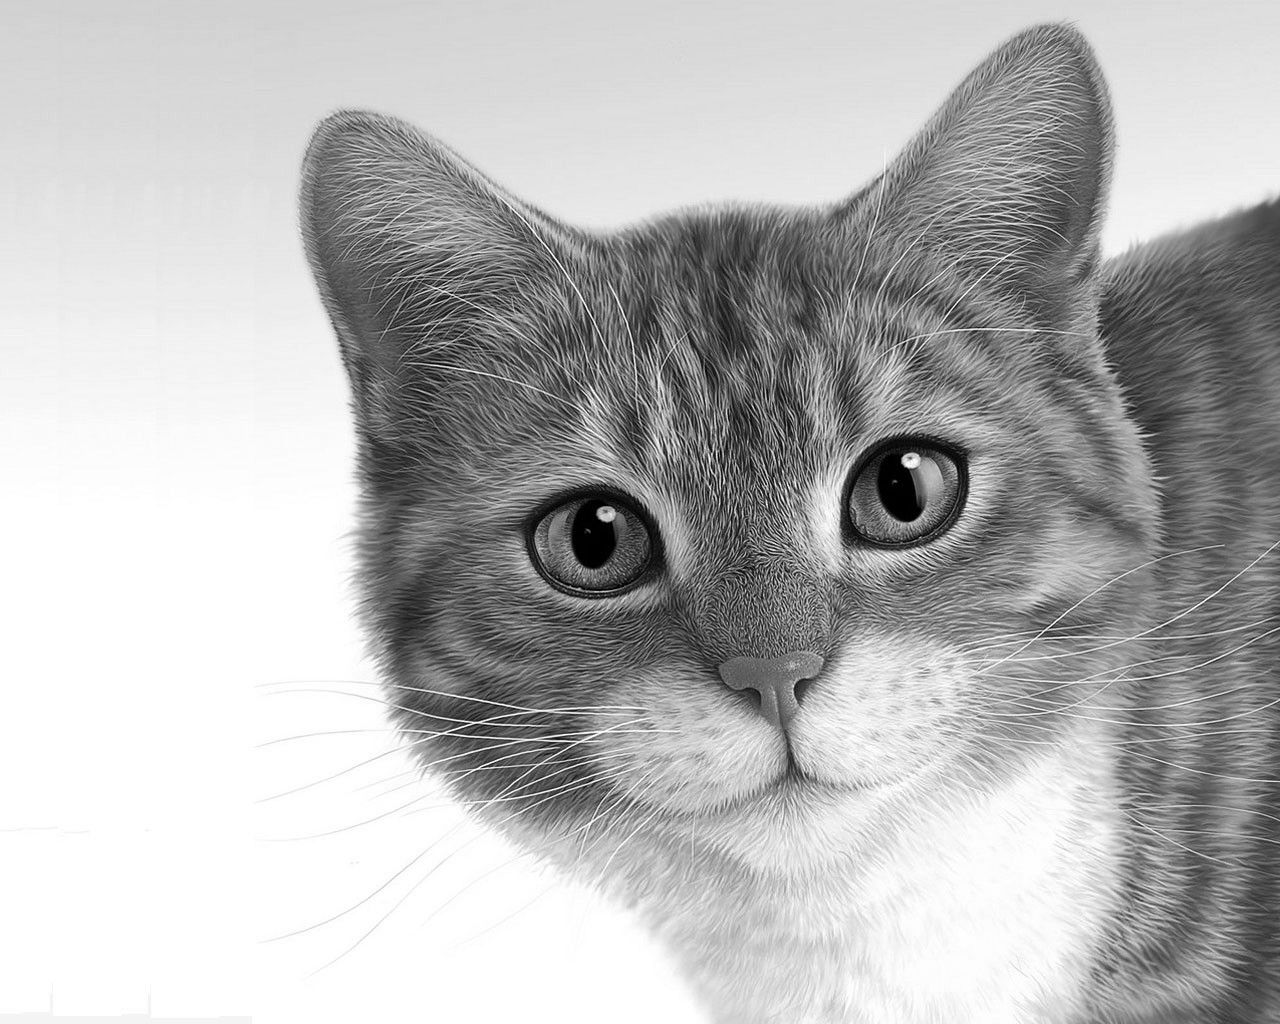 How to draw a realistic kitten face